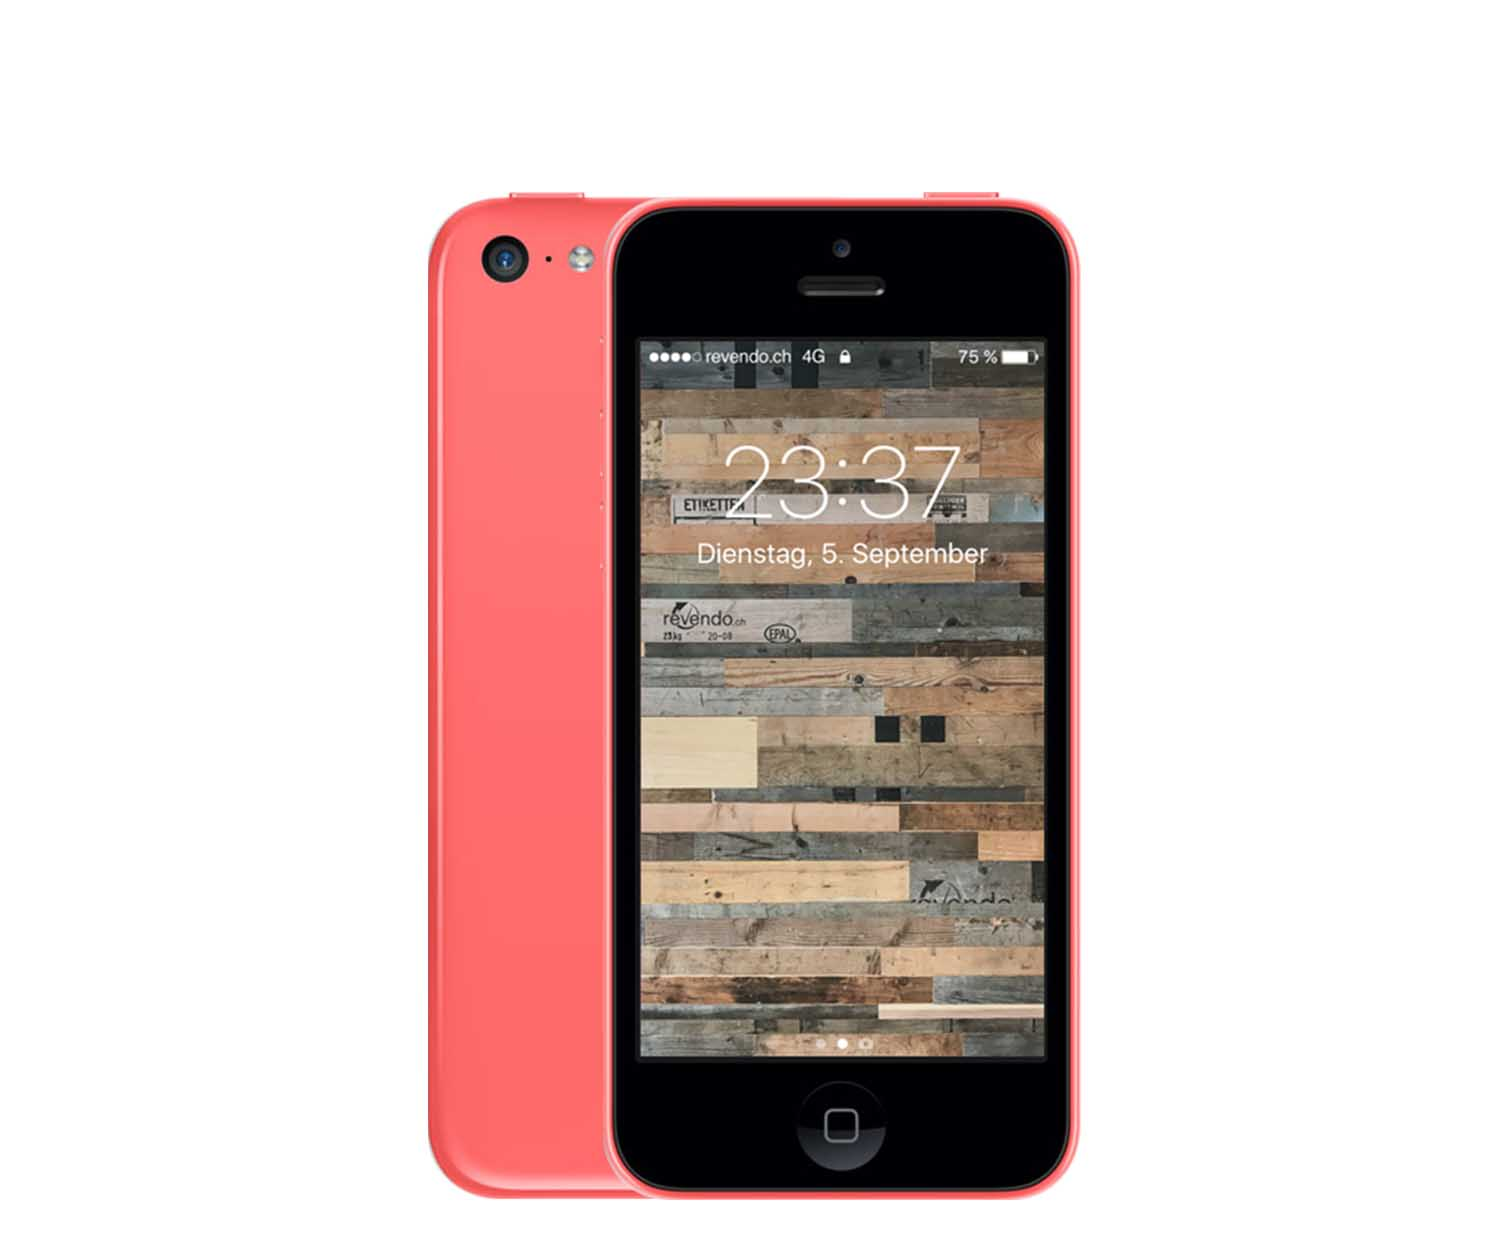 apple iphone 5c 16 gb pink. Black Bedroom Furniture Sets. Home Design Ideas